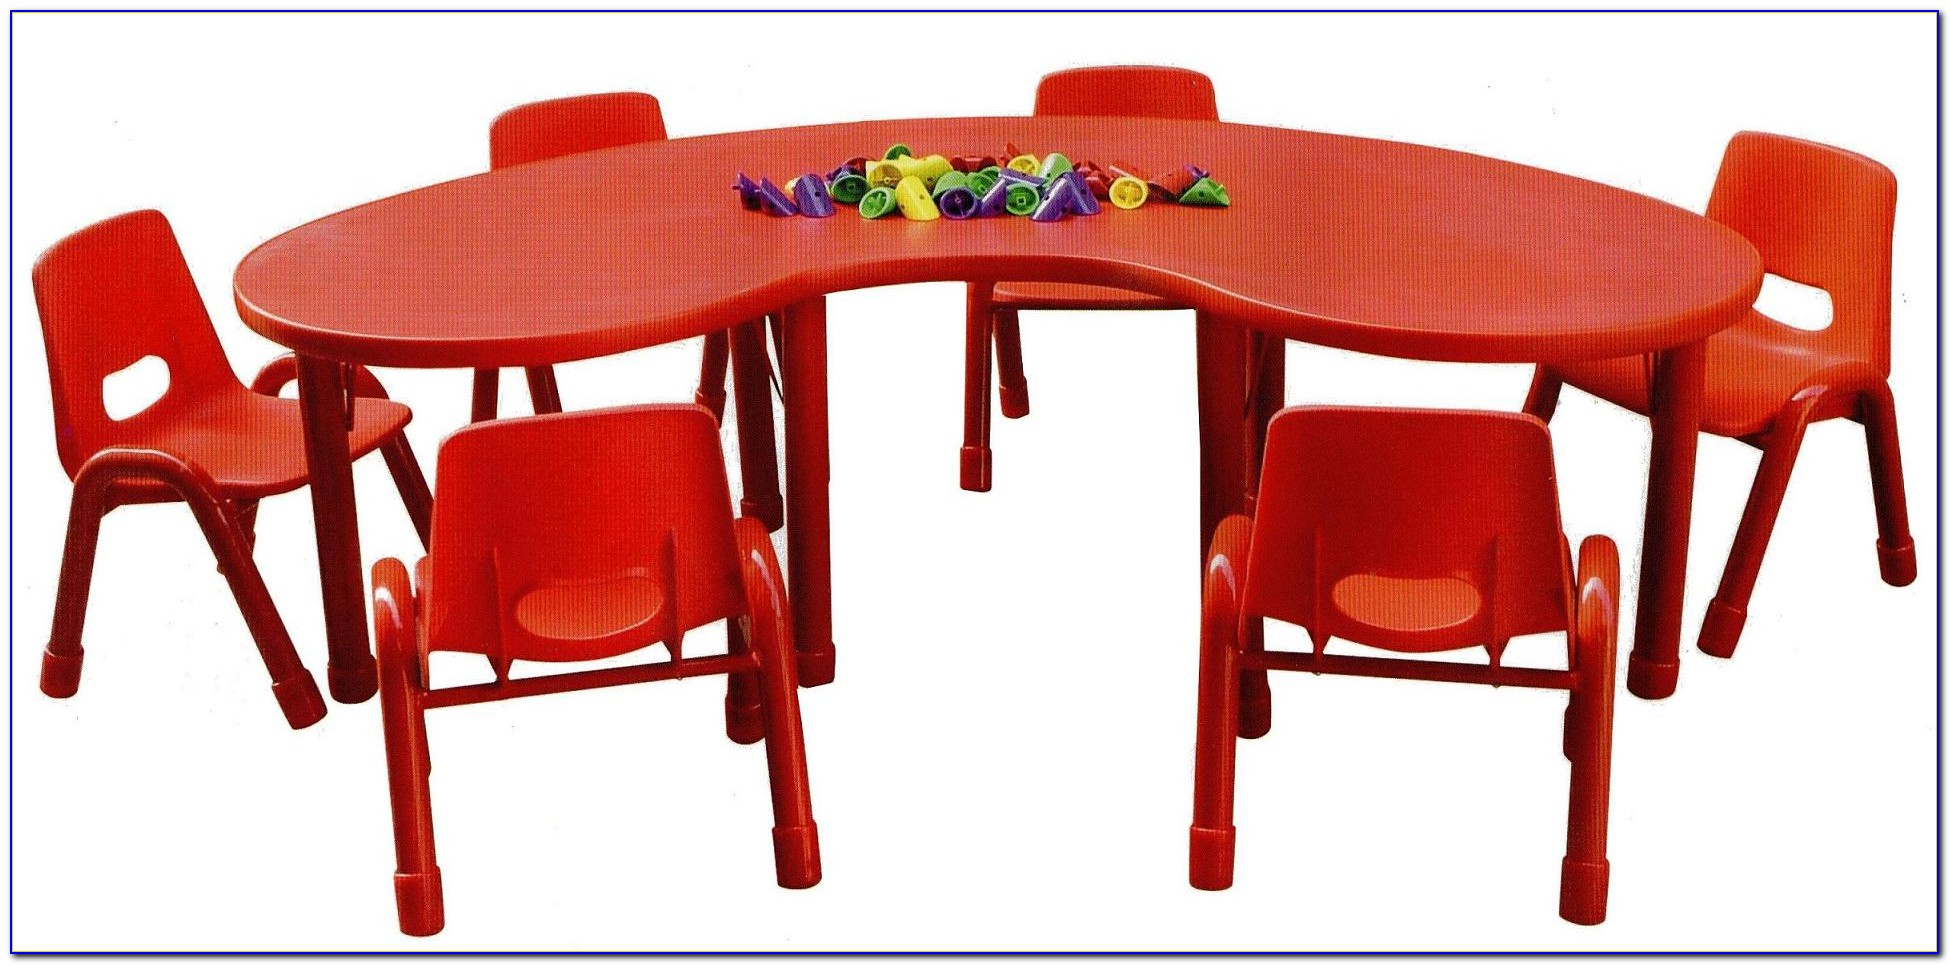 Toddler Table And Chair Set Singapore